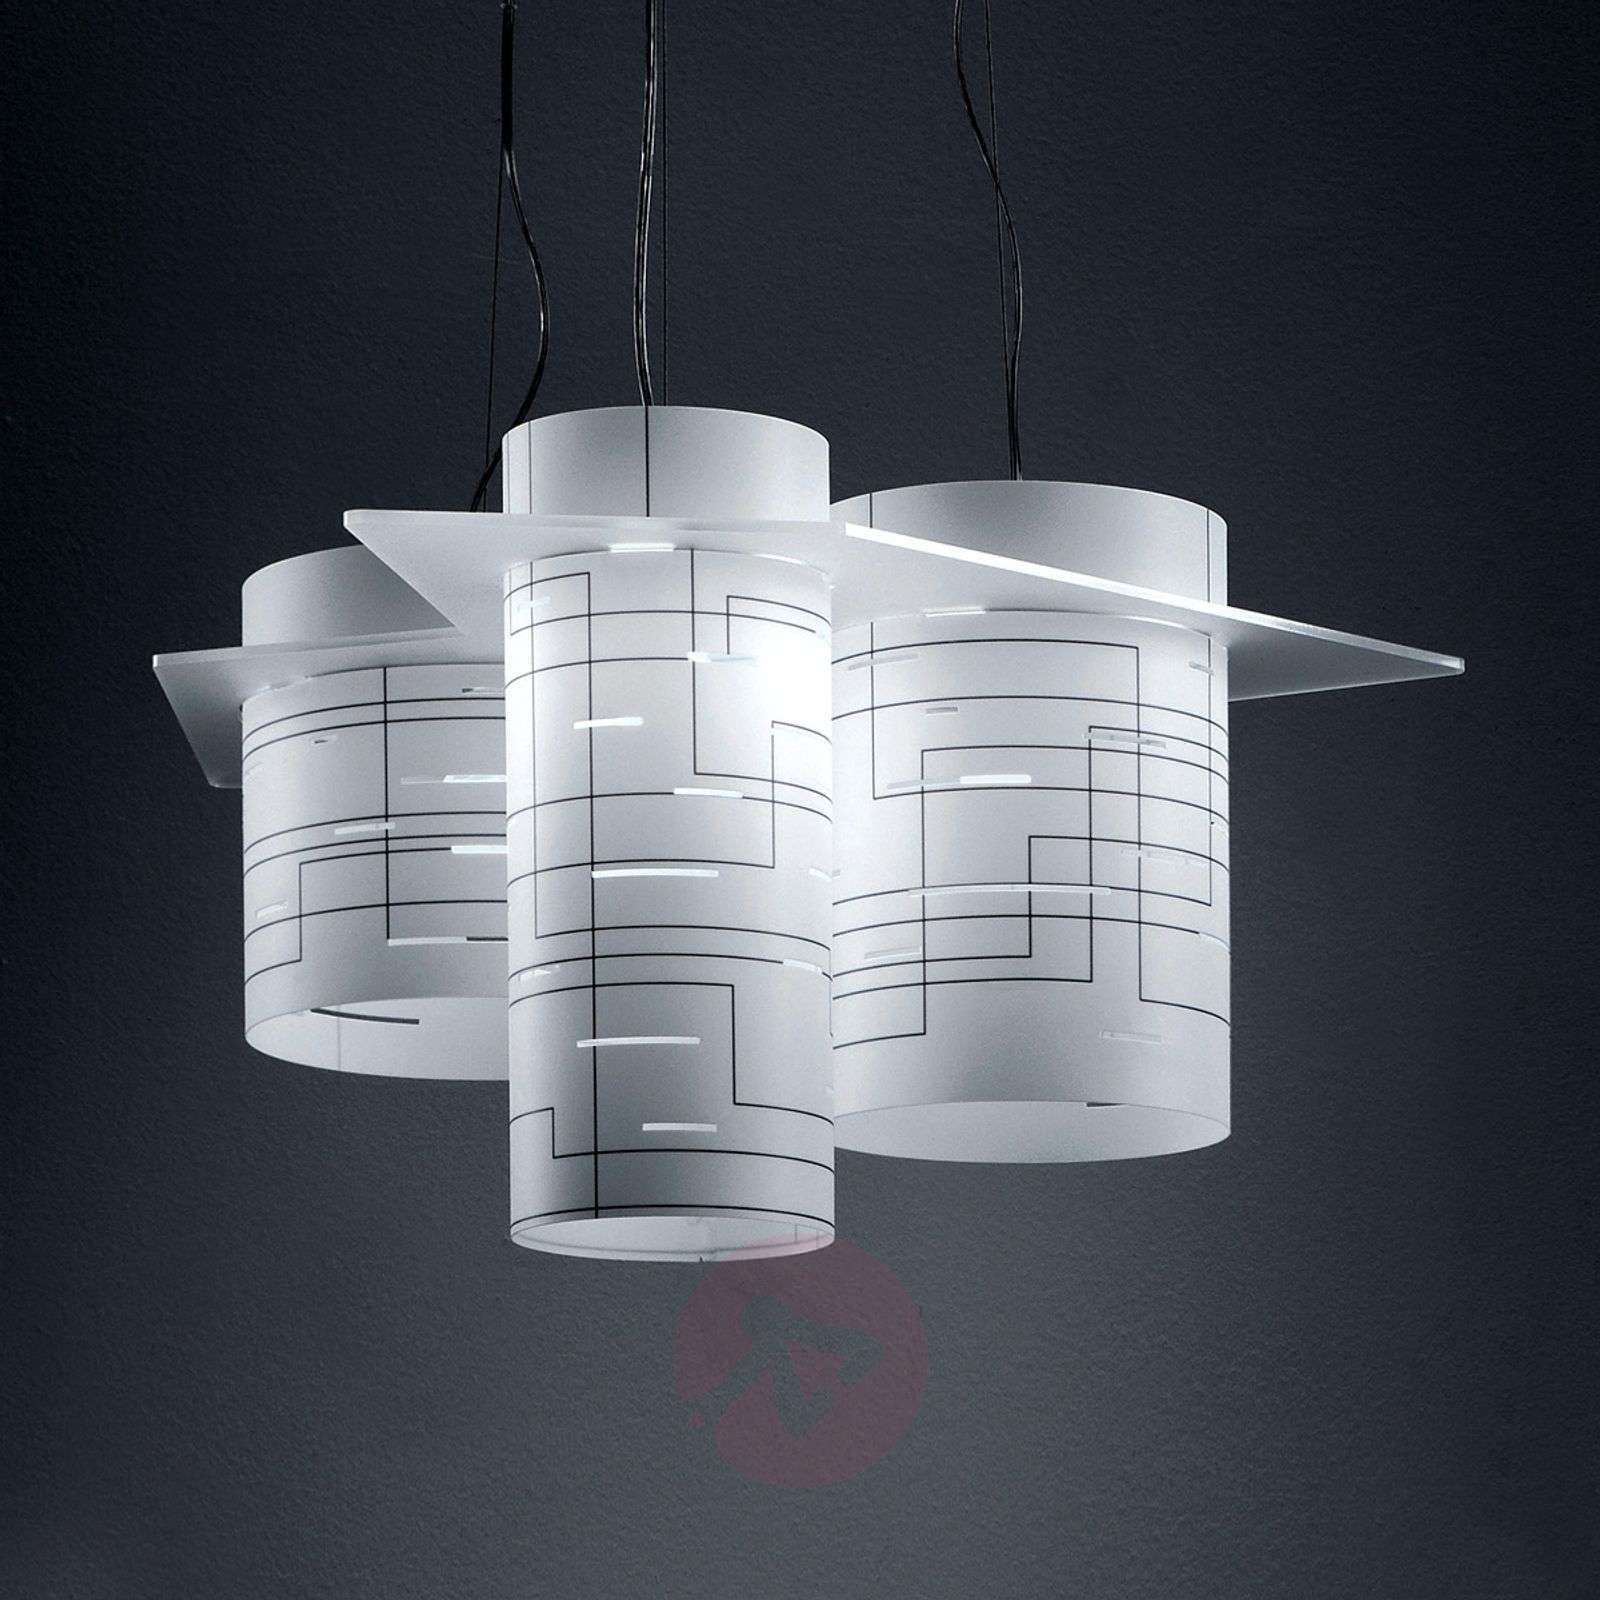 Cylindrical hanging light Brothers, white-1056028-01